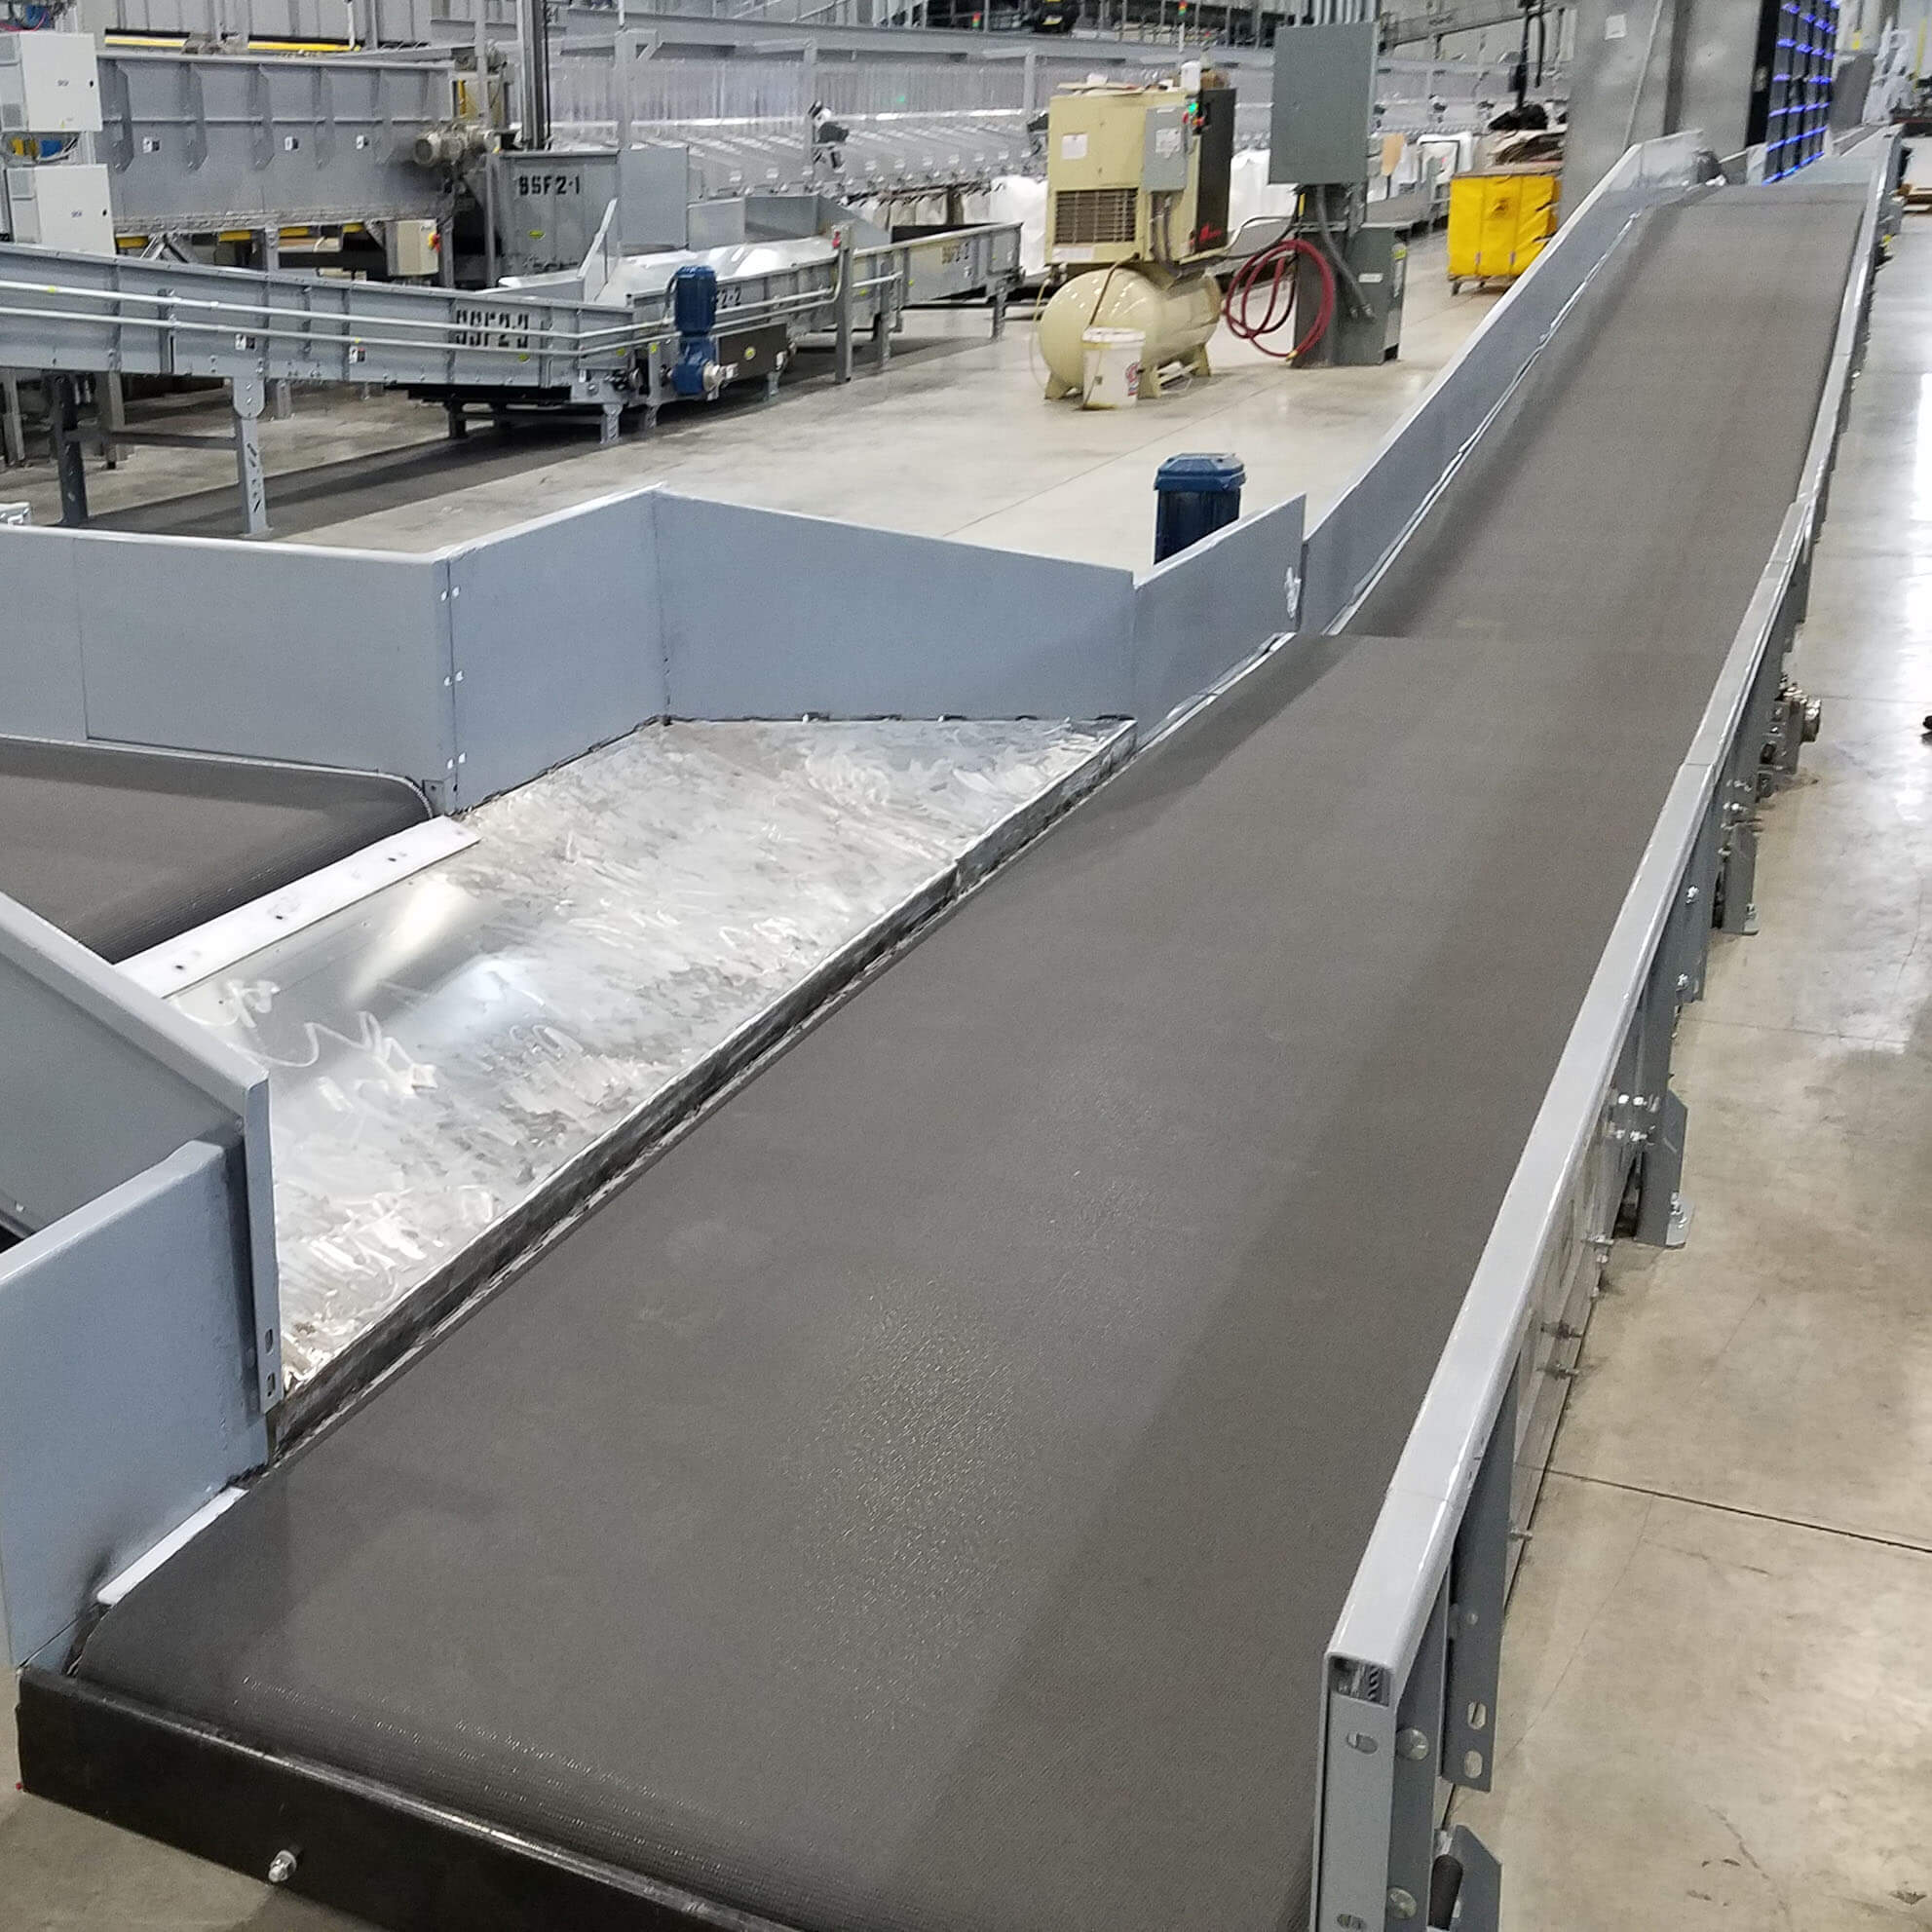 Heavy-duty belted conveyor ready for parcel handling.